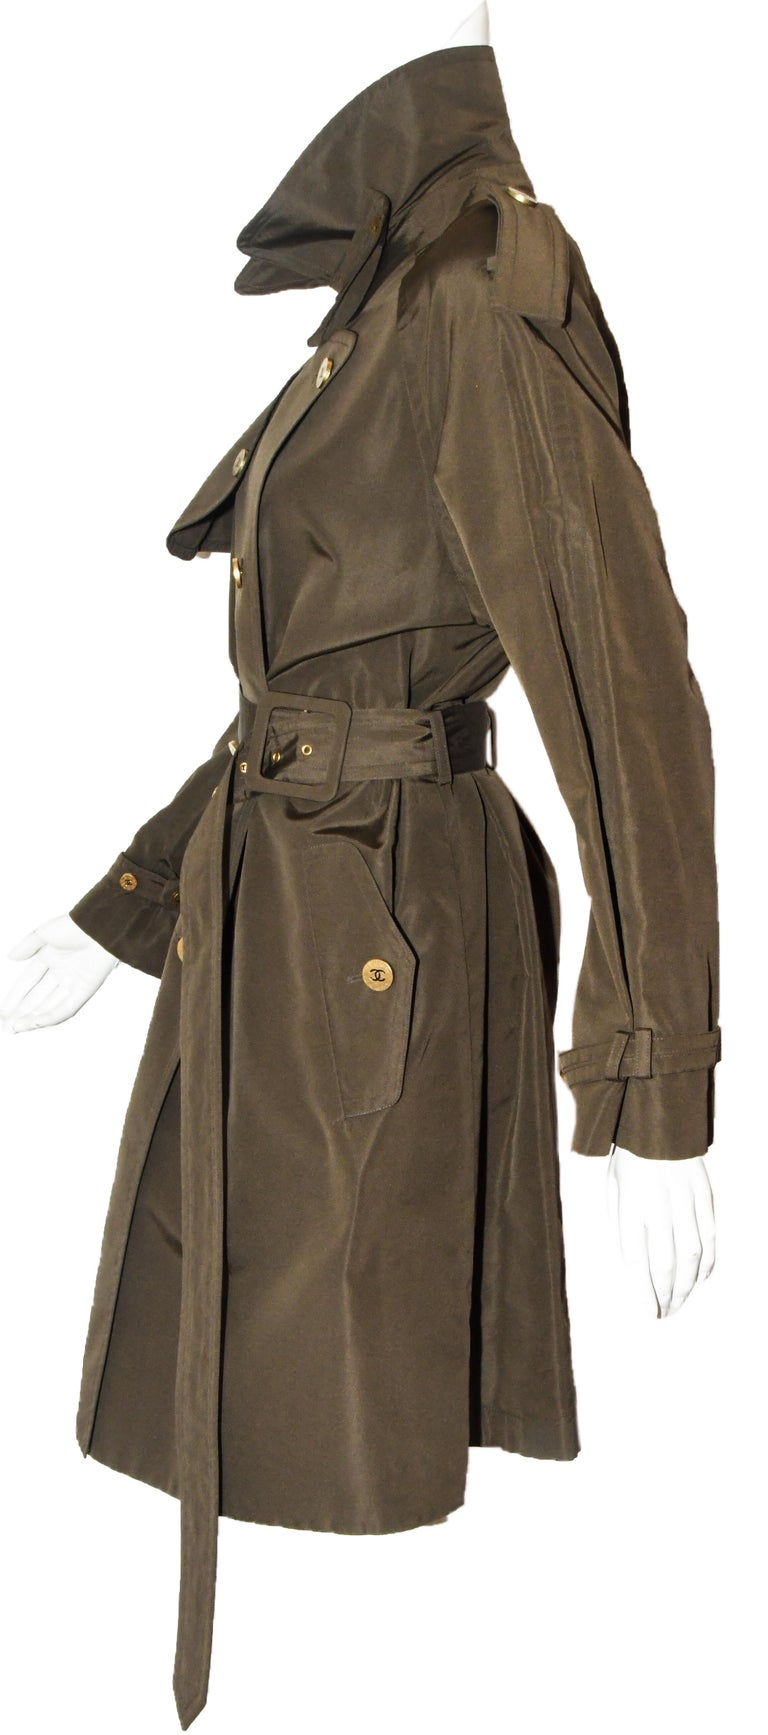 dab113bd0b04 This stunning 100% silk raincoat will make you wish for more rainy days! A